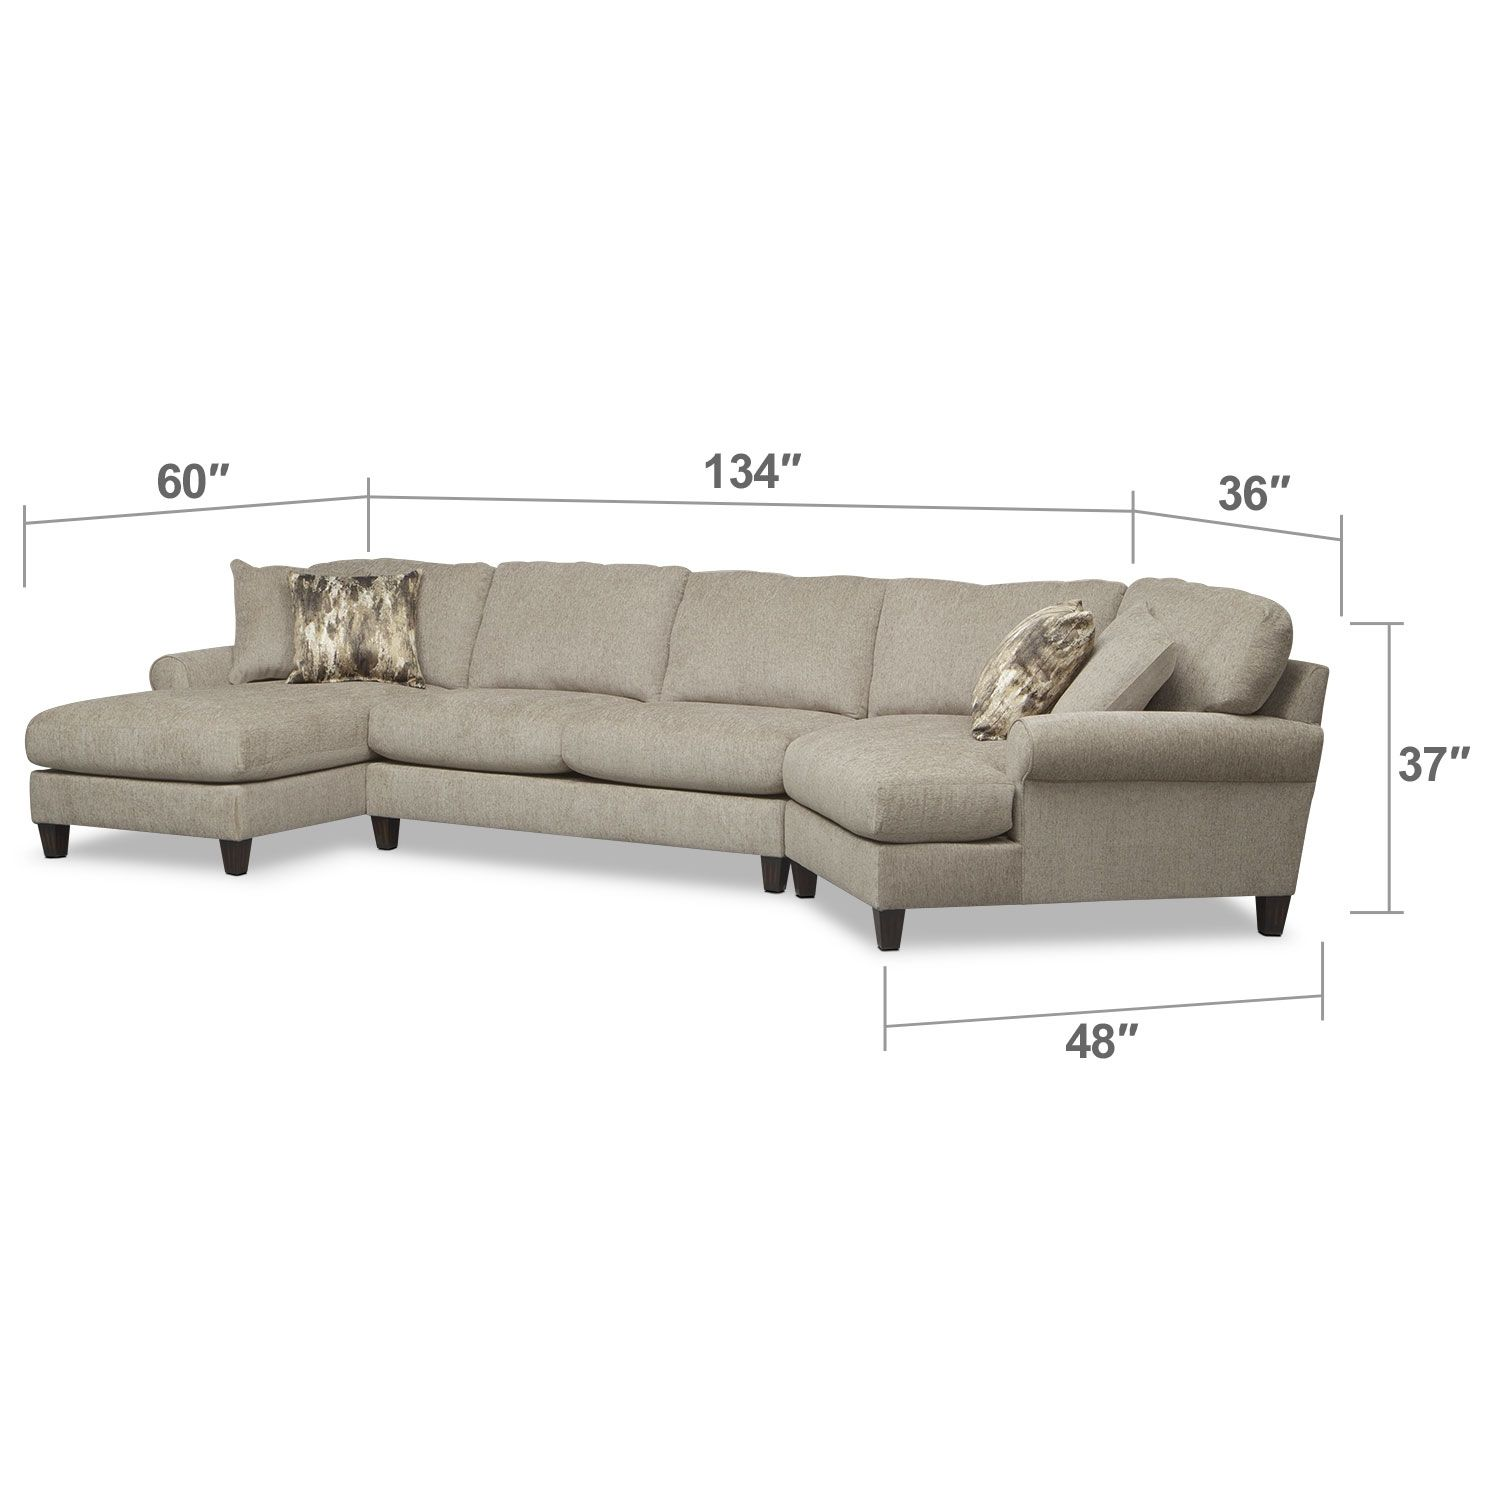 sofas one with size of sofa seater couch sectional collection chaise cuddle sleeper cuddler full